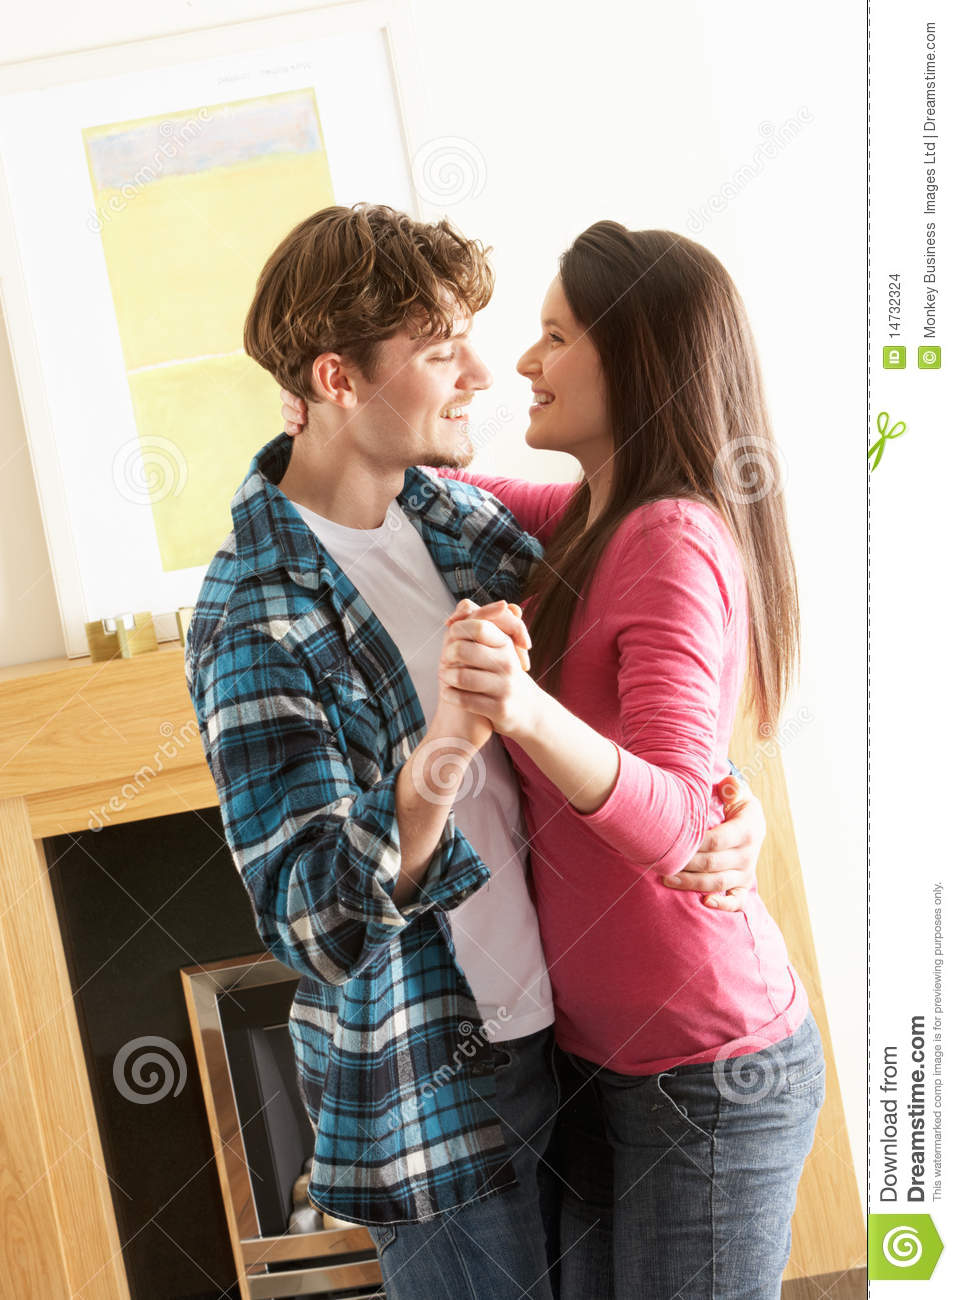 young couple dancing together in living room stock photo